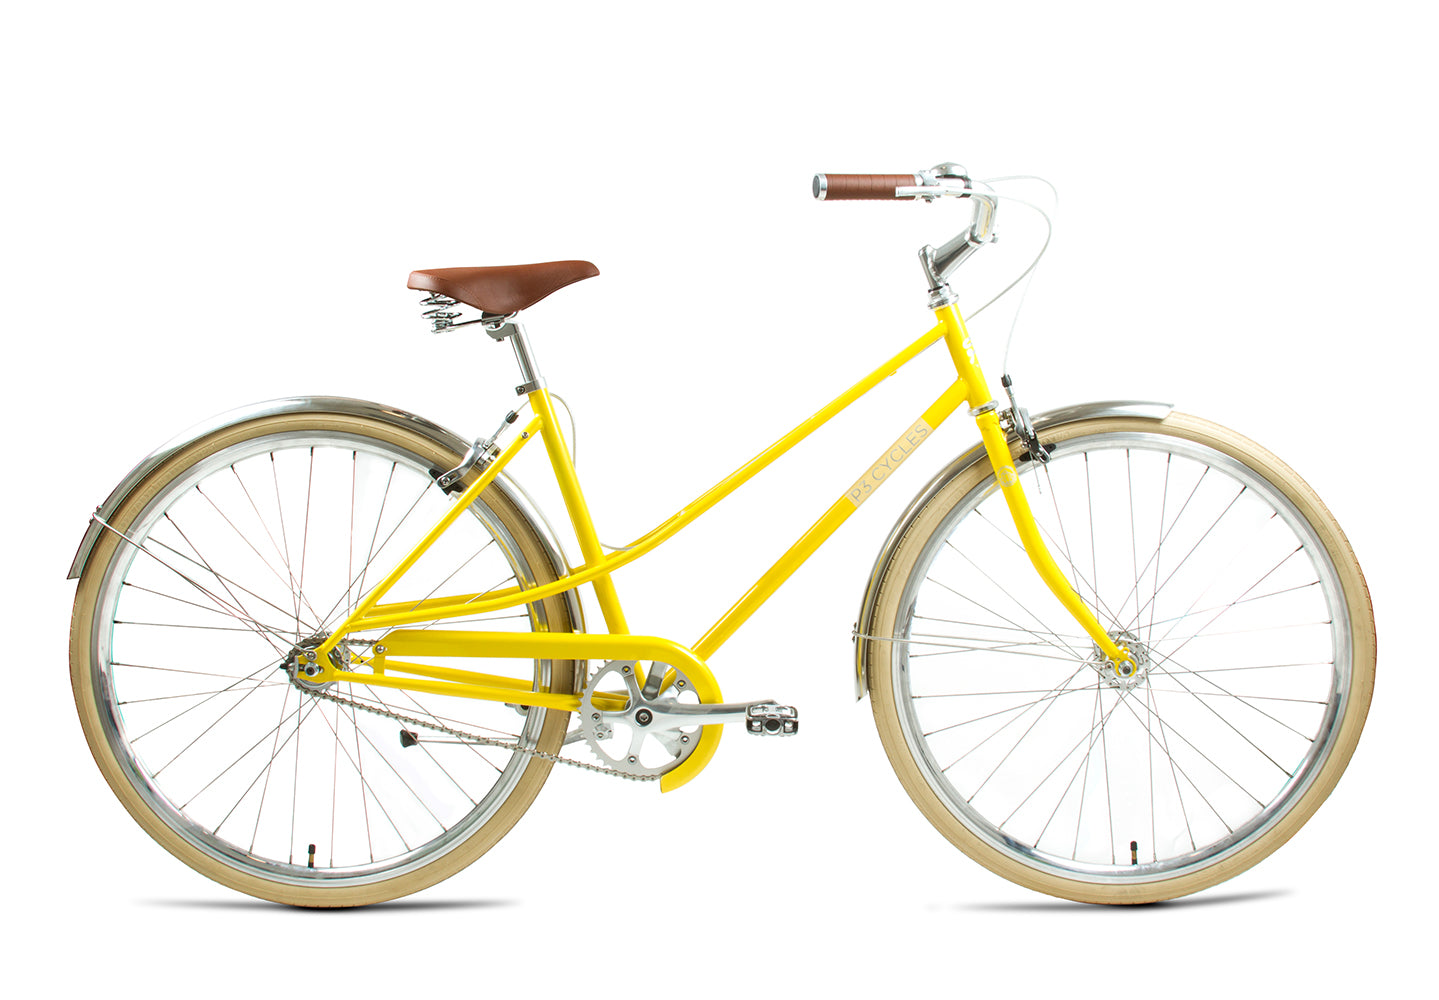 Ruedas Single Speed 700 C 36 agujeros negro amarillo